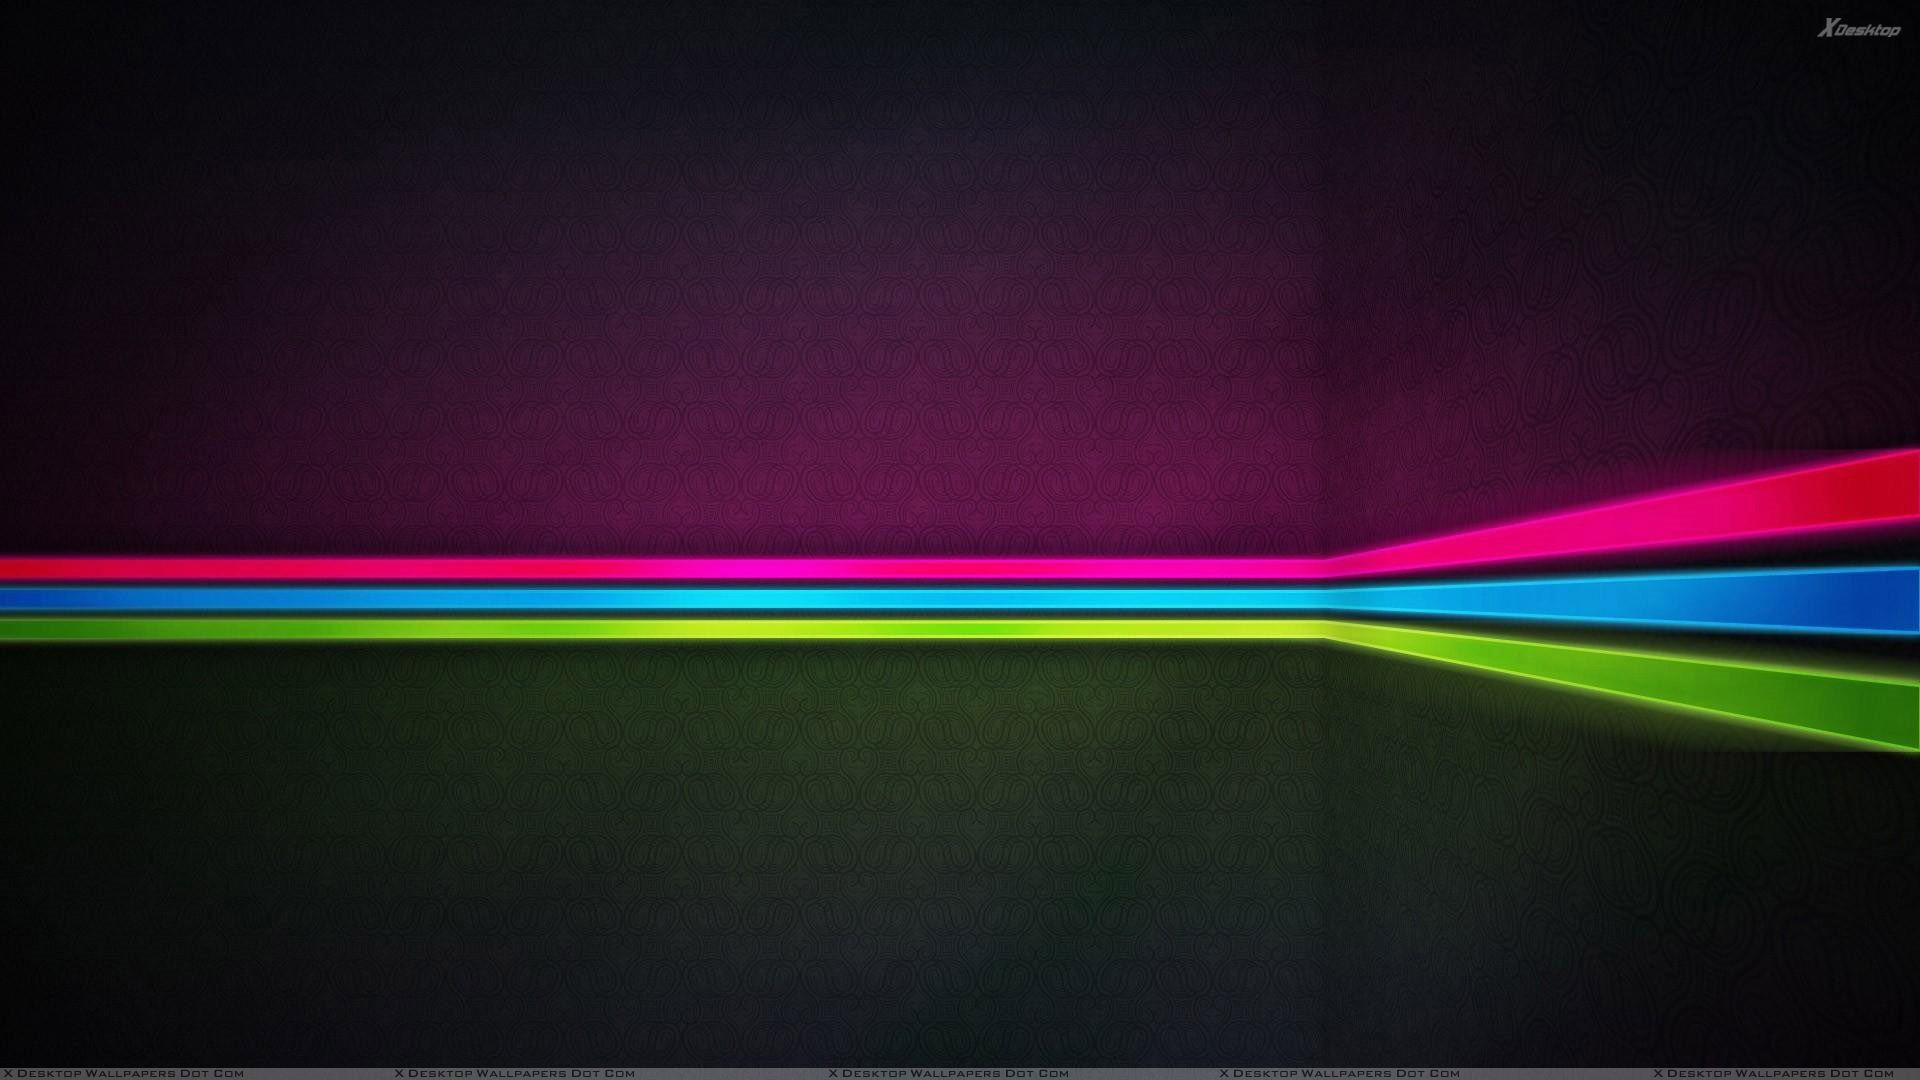 pink blue green line abstract wallpaper